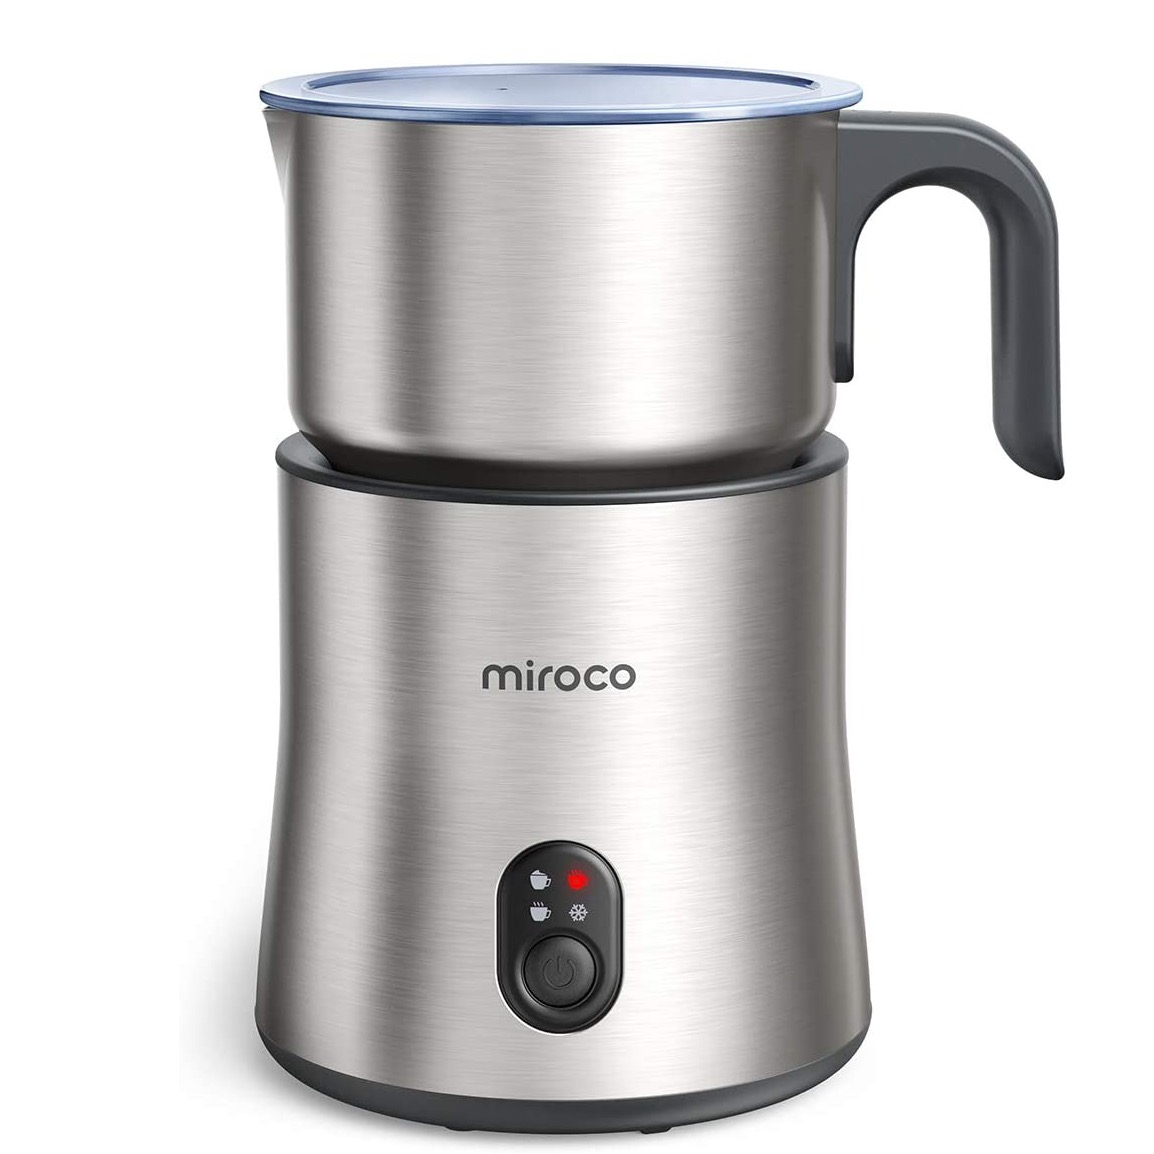 Miroco milk frother review